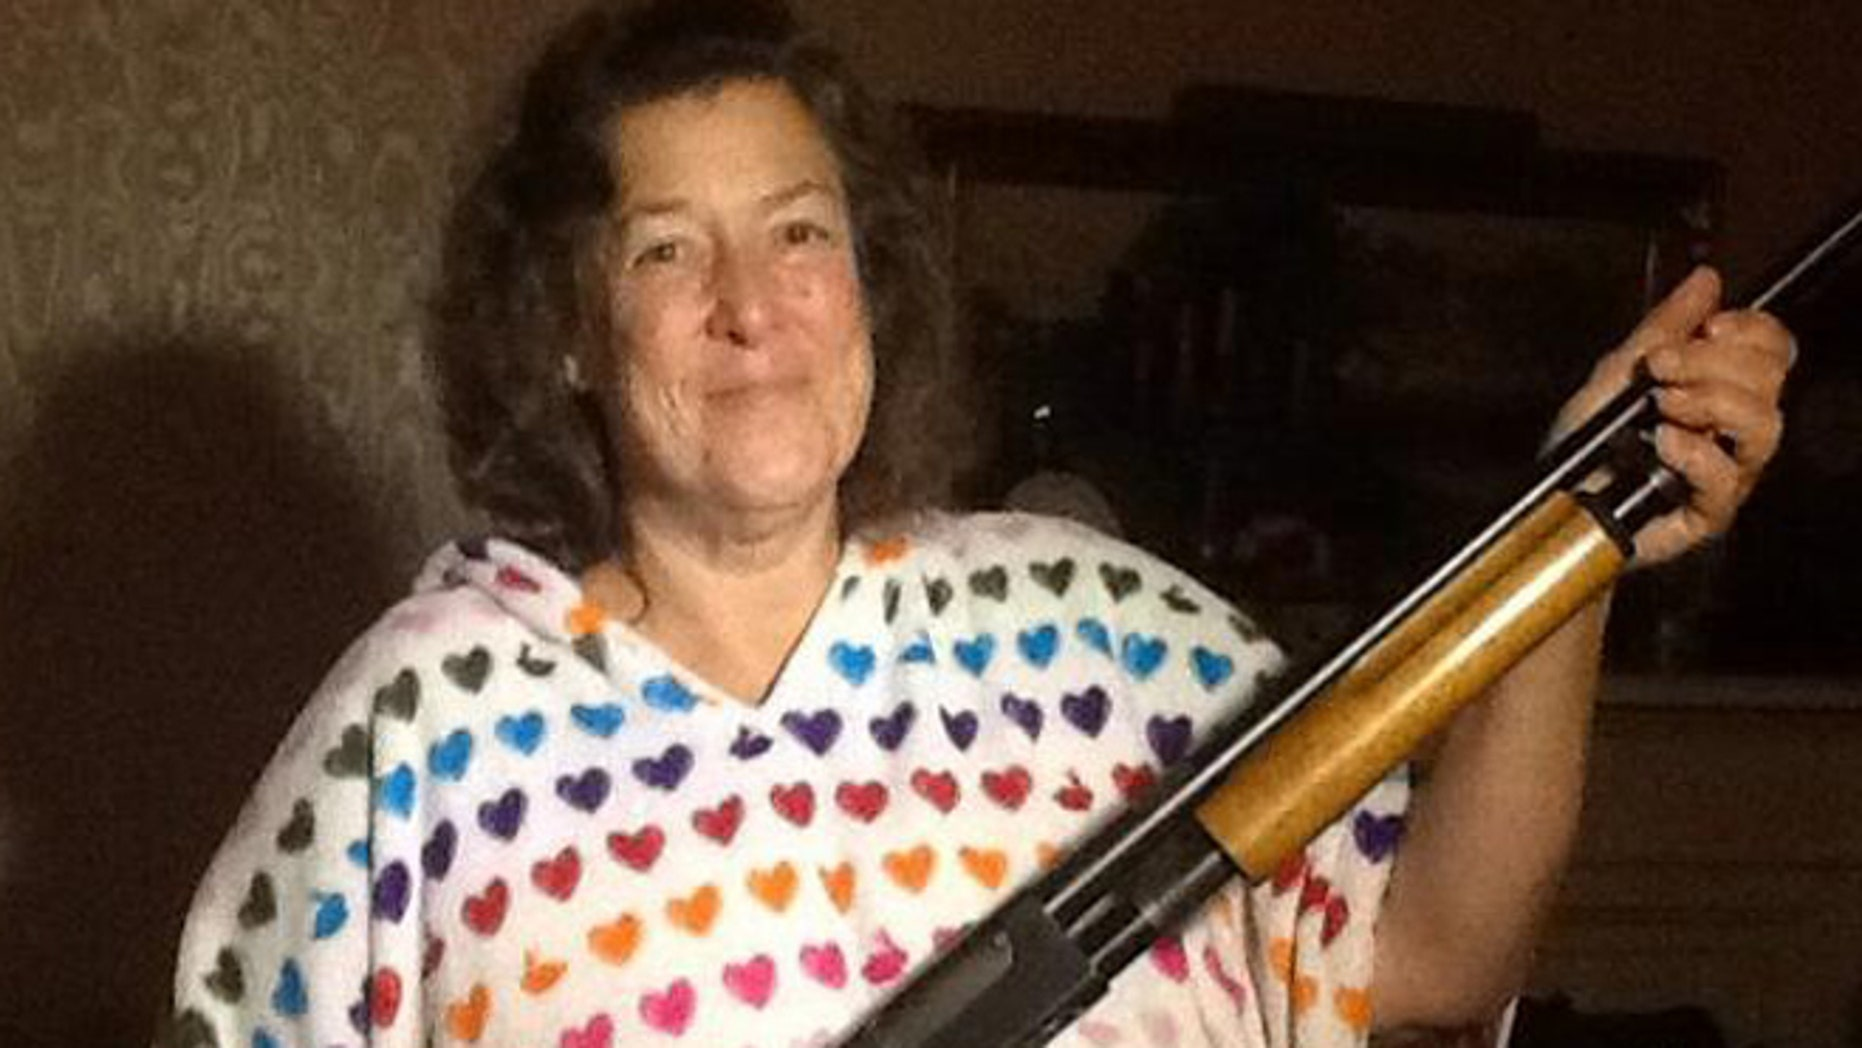 This undated photo shows Carla with the shotgun police say she used to chase off two suspects.